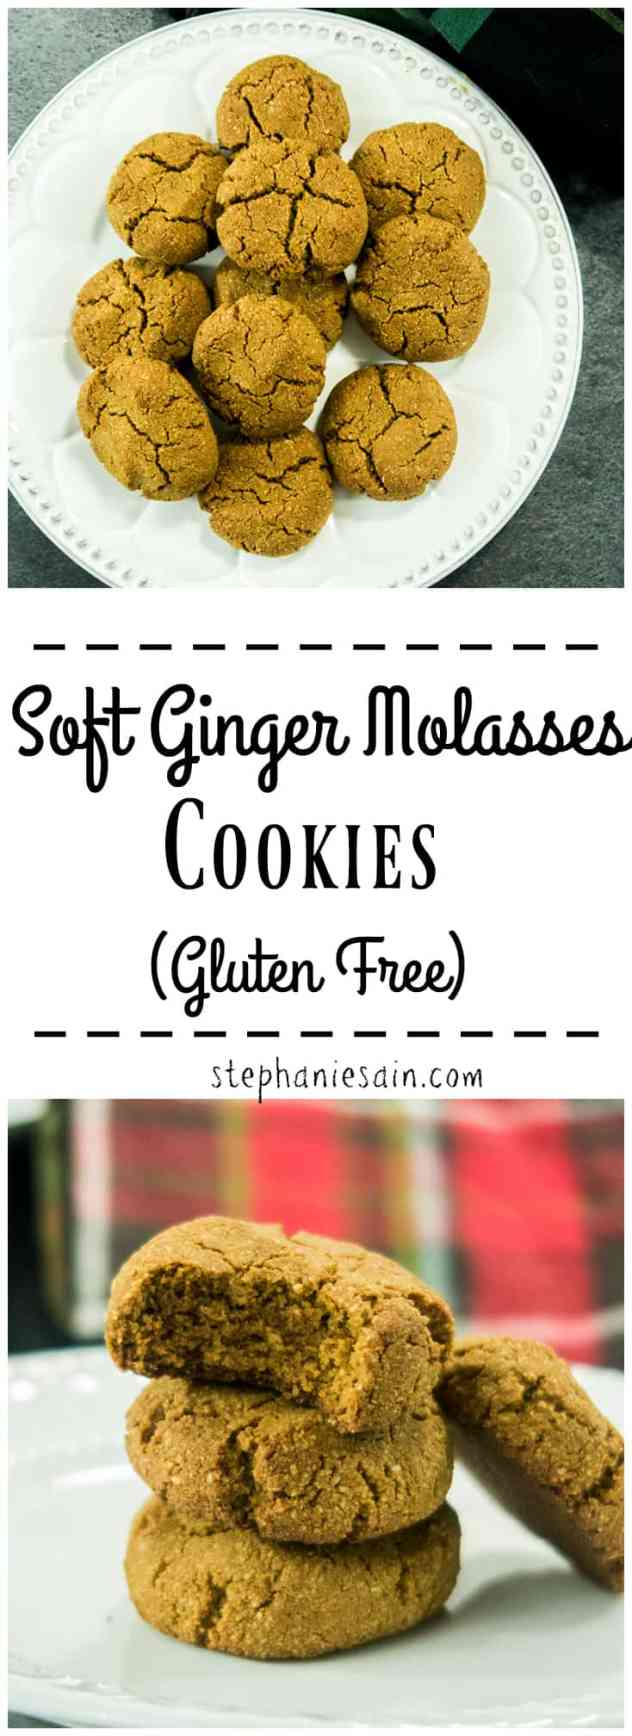 Soft Ginger Molasses Cookies are perfectly spiced, chewy, & soft. Fragrant ginger & cinnamon will have your home smelling amazing & just like the Holidays. No Added Refined Sugars, Gluten Free, & Easily made Vegan.